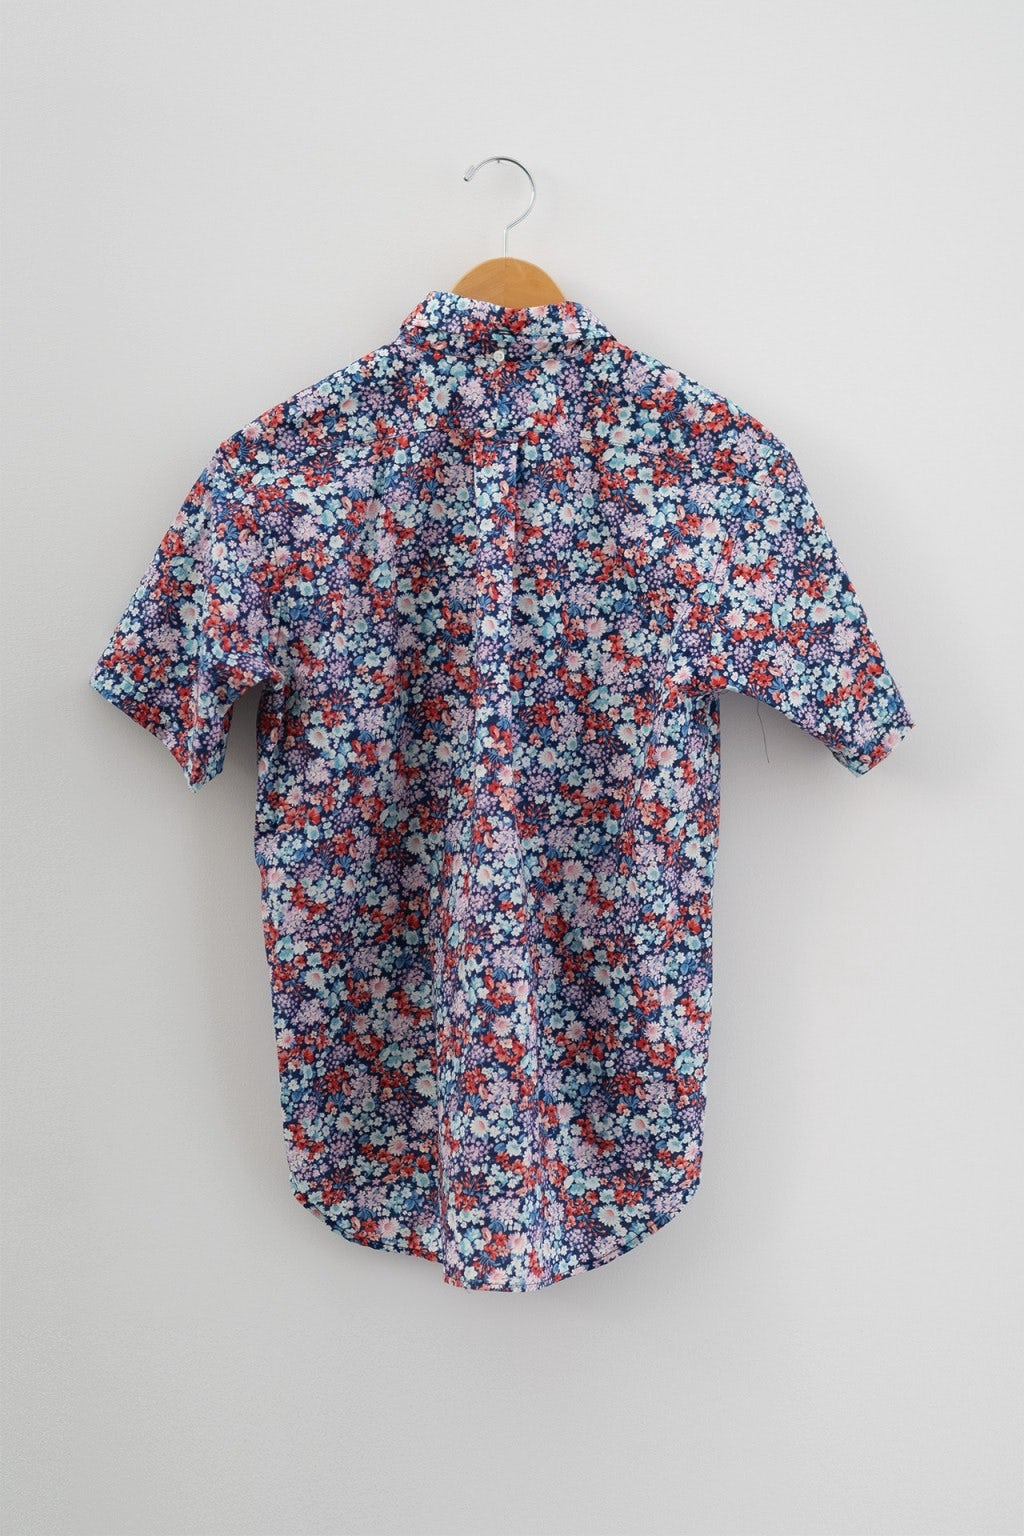 Engineered Garments Popover BD Shirt Navy/Red/Light Blue Floral